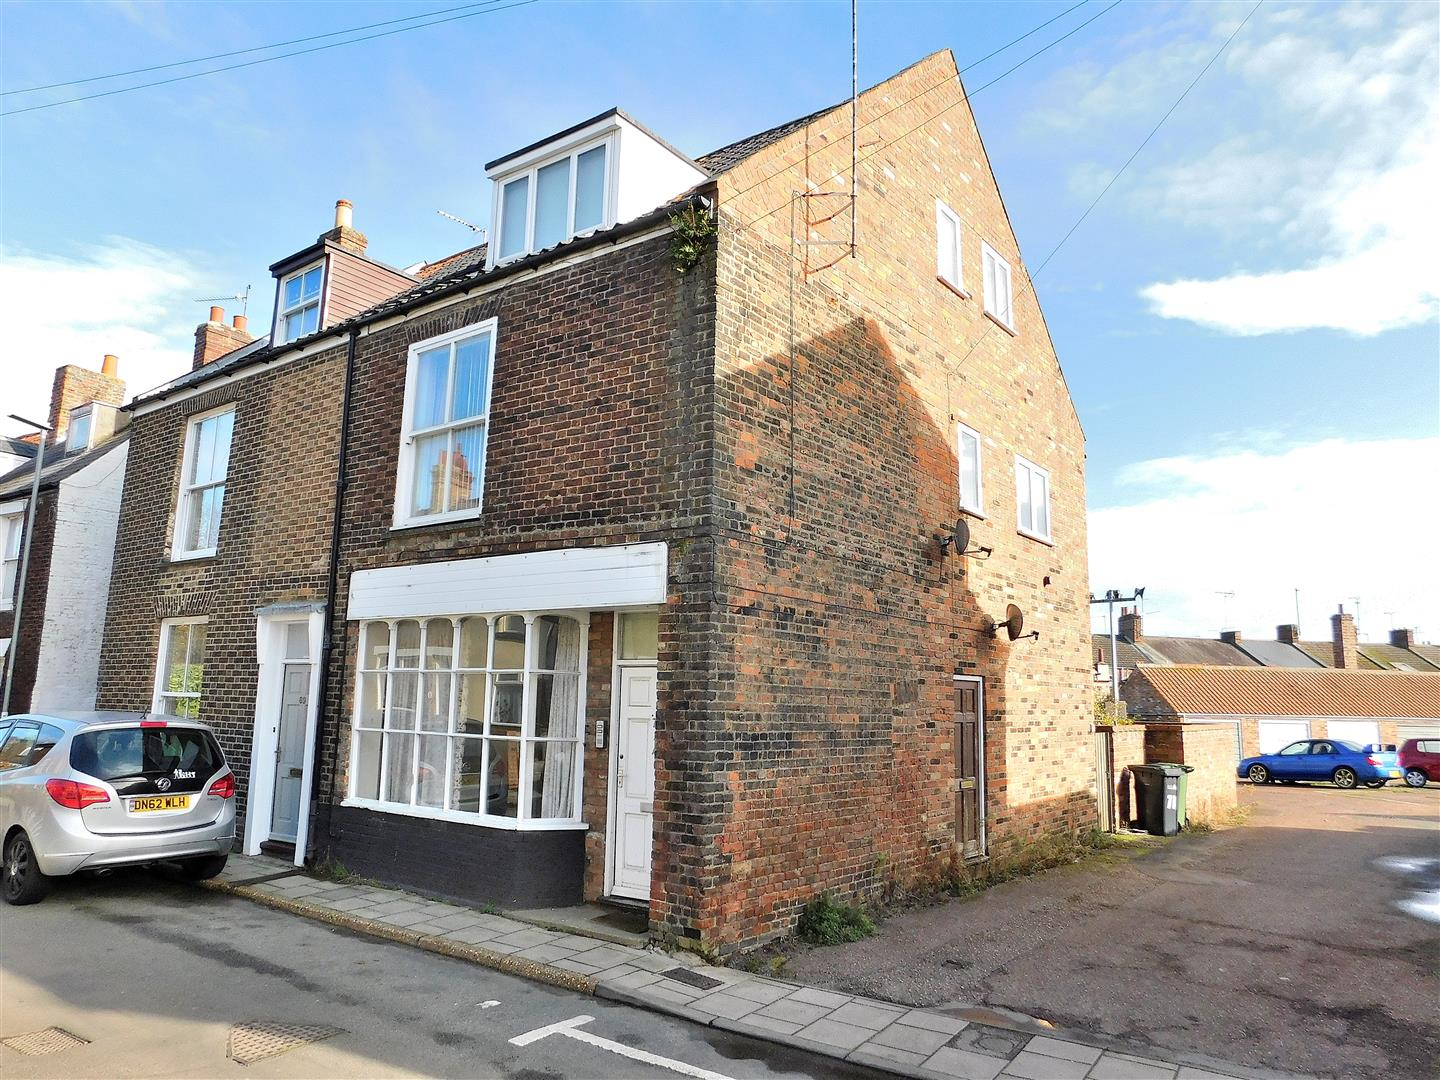 2 bed flat for sale in Friars Street, King's Lynn, PE30